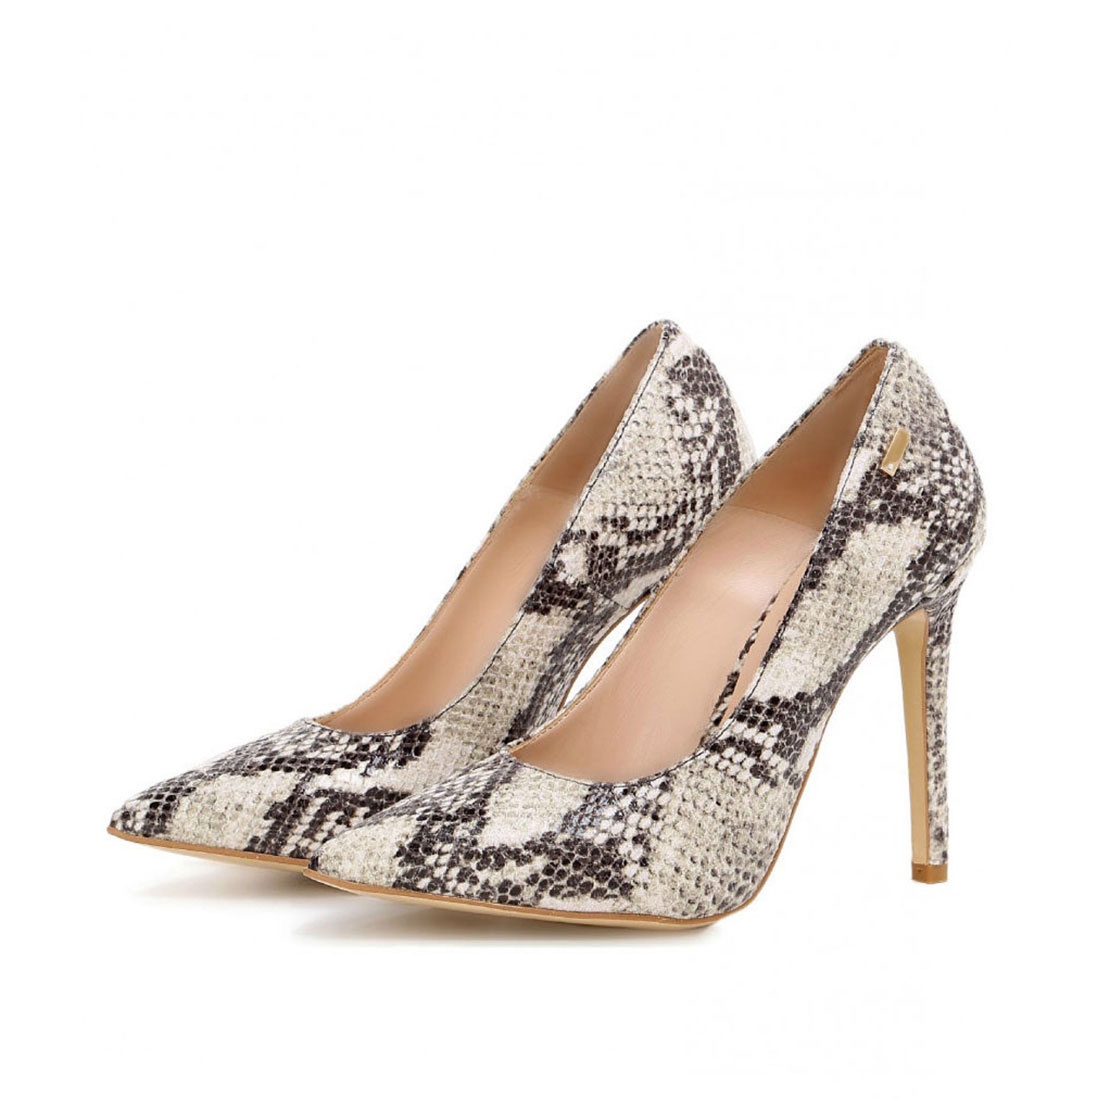 Sexy design snakeskin 8cm high heel women dress pump shoes YB2070